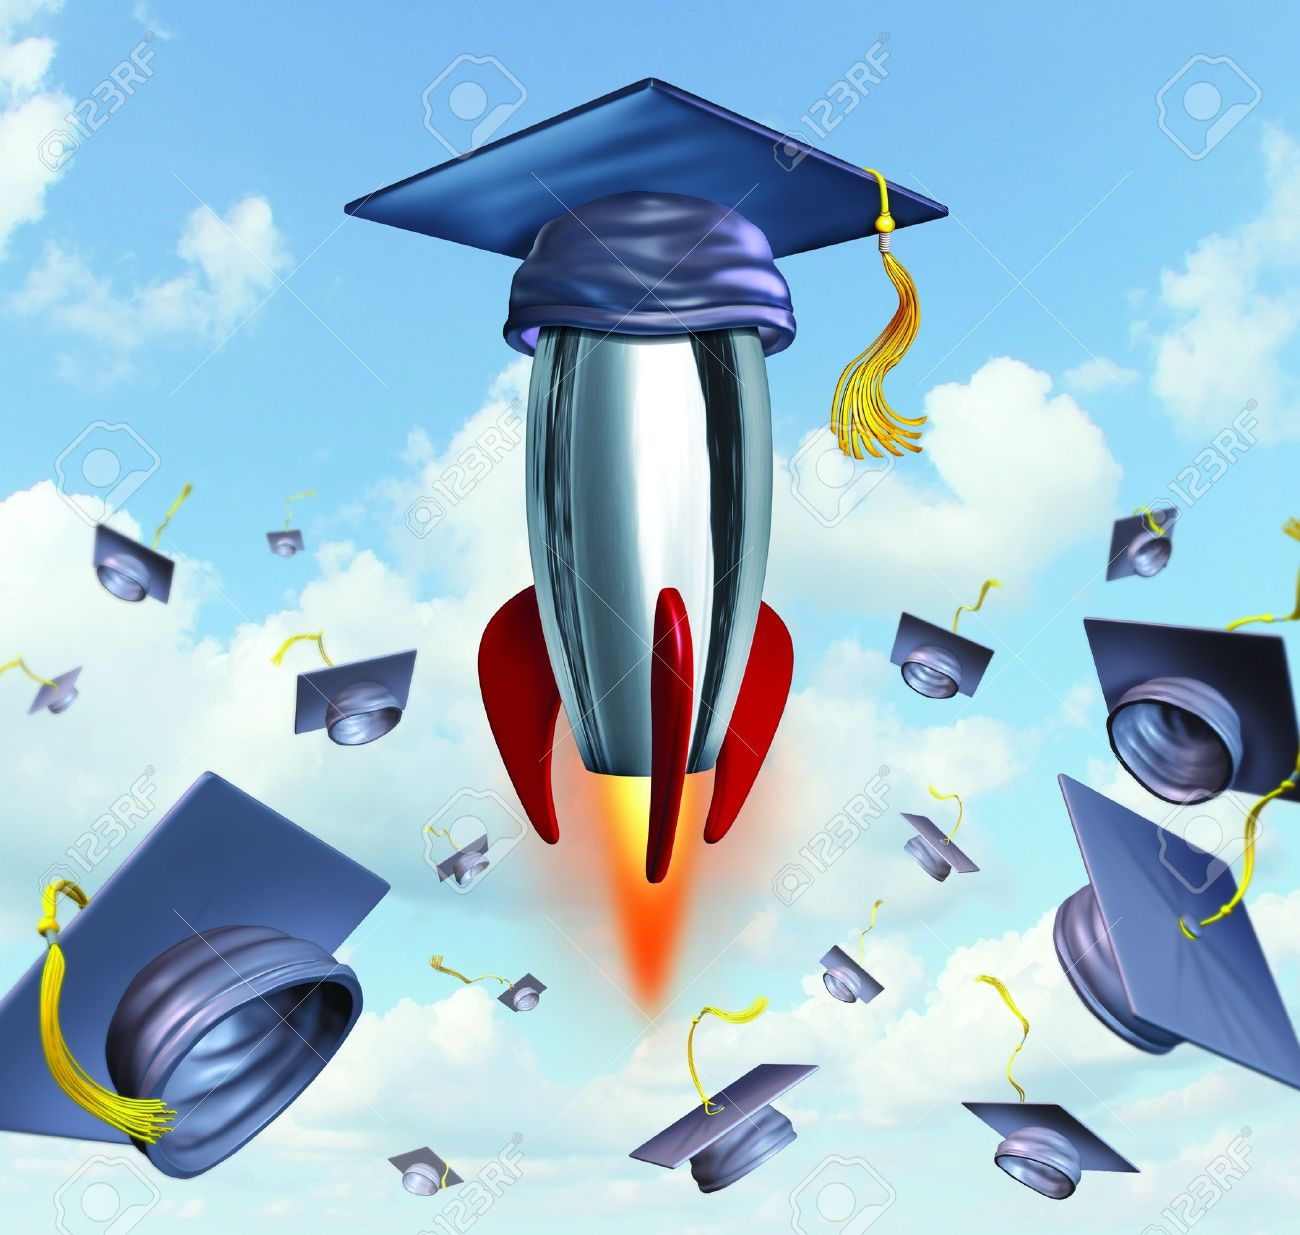 Education success with graduation hats thrown in the air as a celebration with a leading mortar board blasting off into the air in a rocket against a traditional hat toss for the graduate university and college students Stock Photo - 17032206